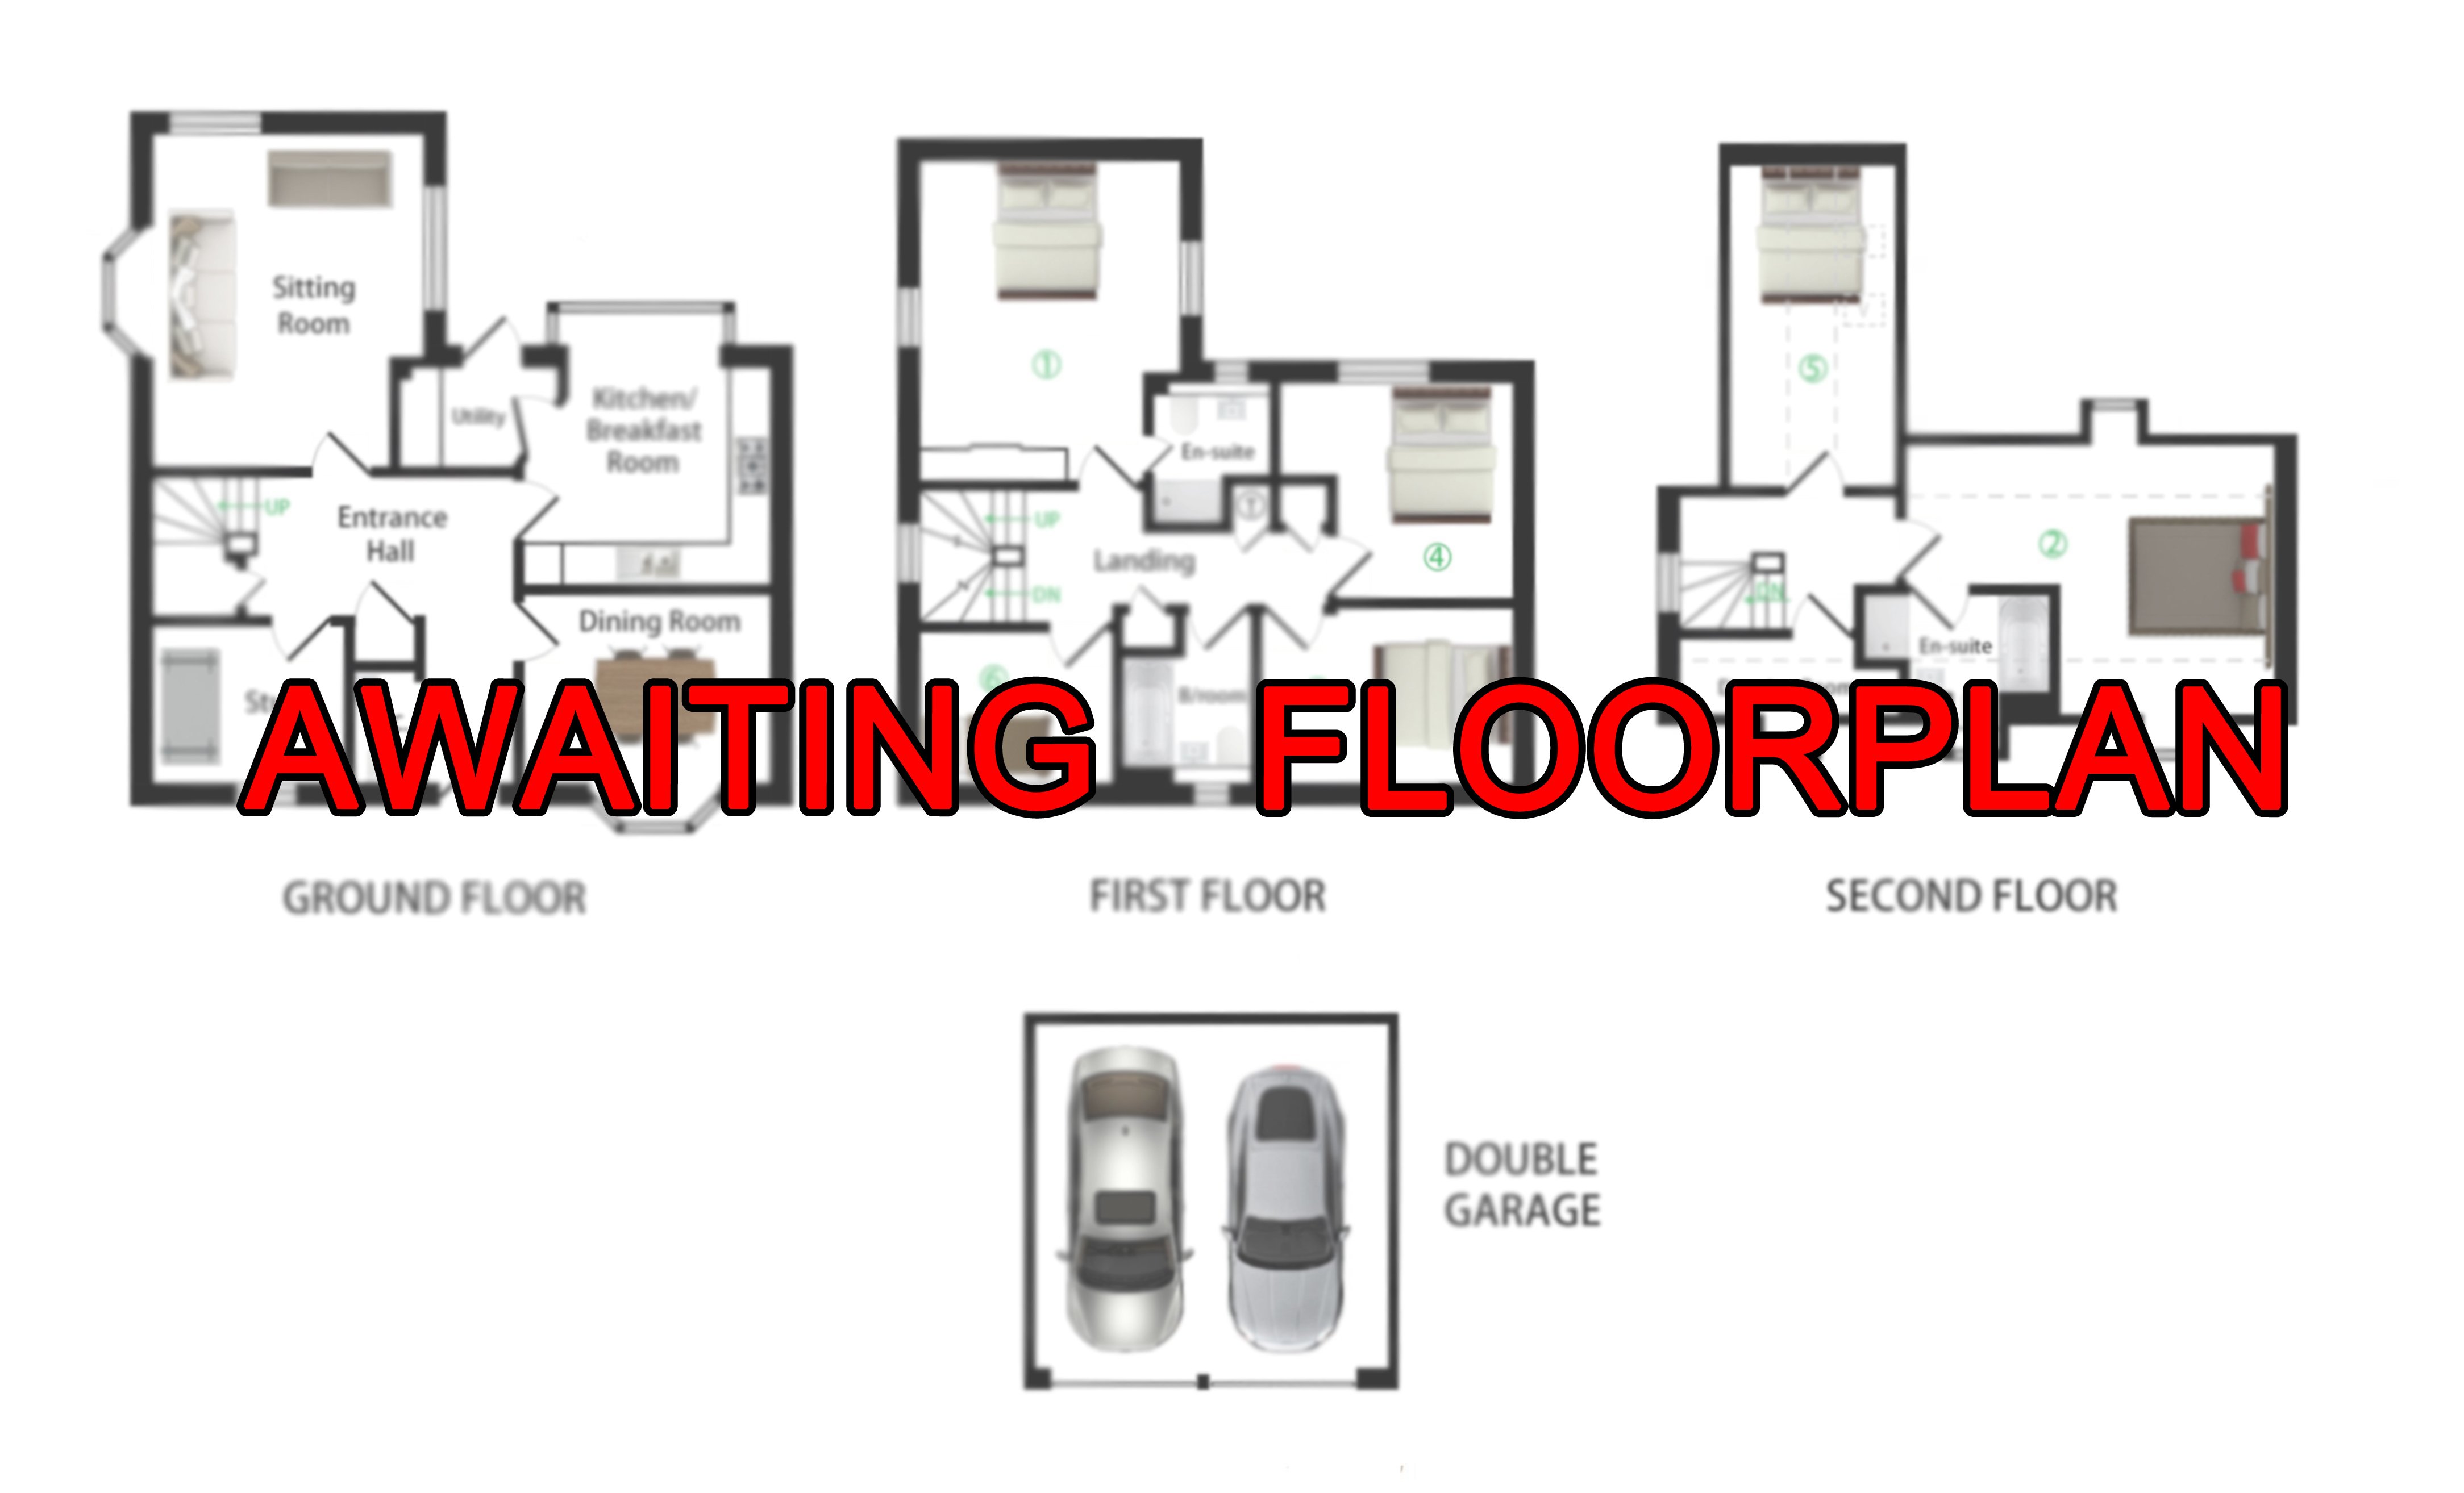 Floorplans For Fairview, Pluckley